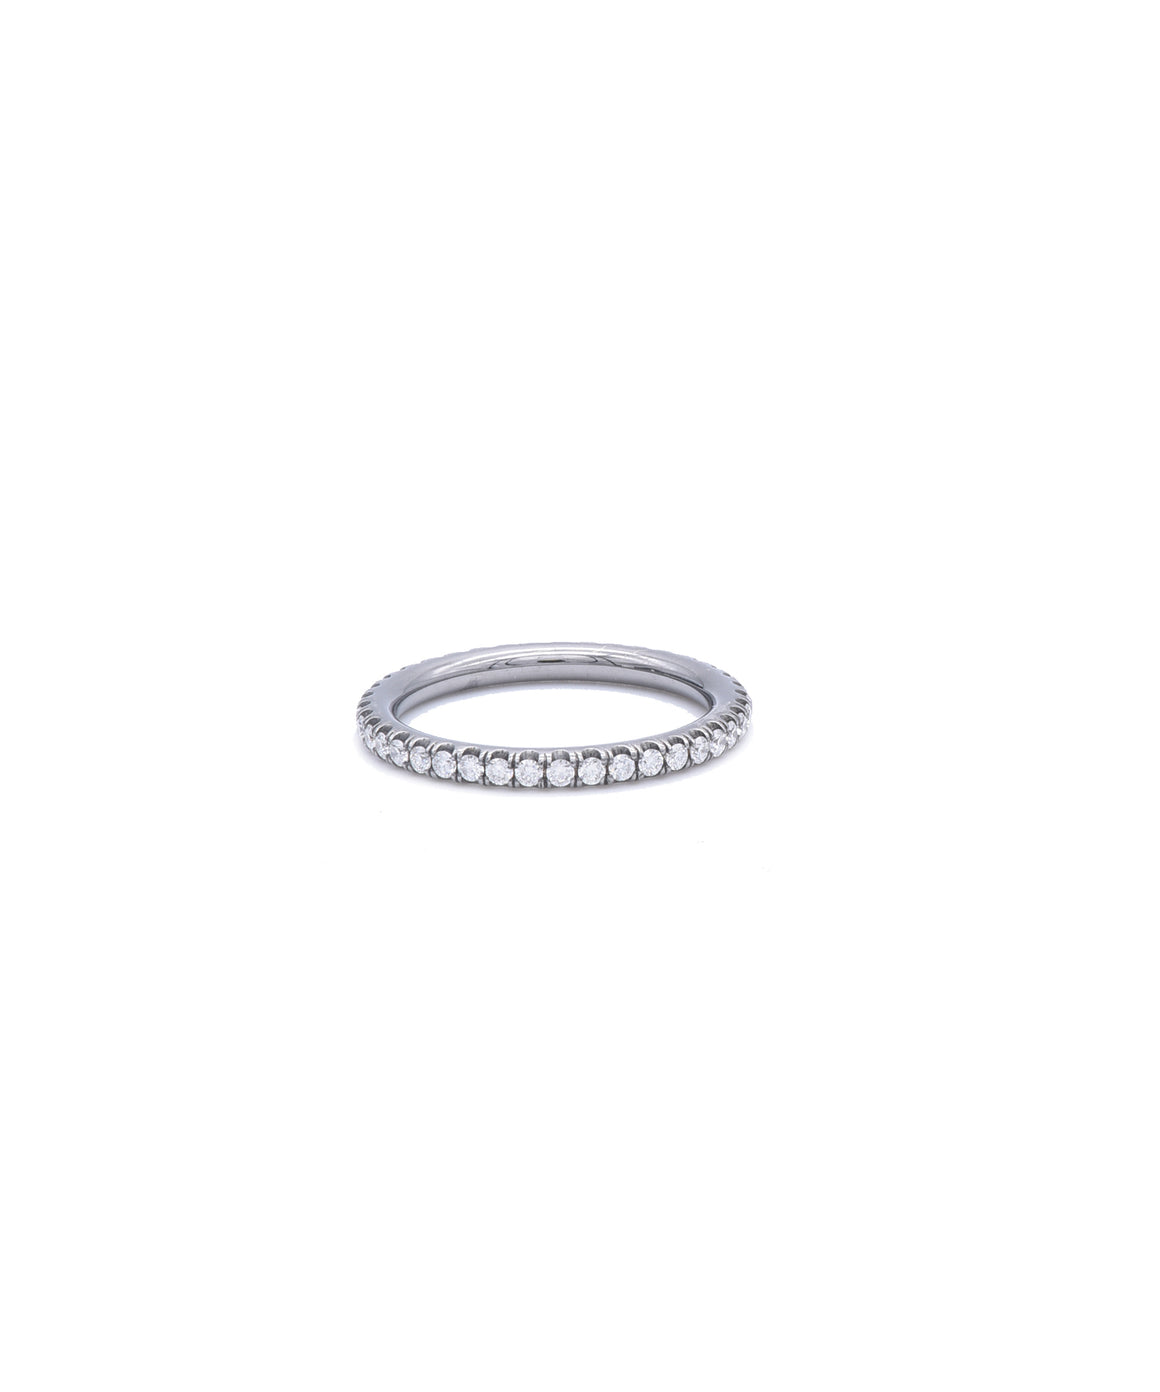 Blackened White Gold Eternity Band